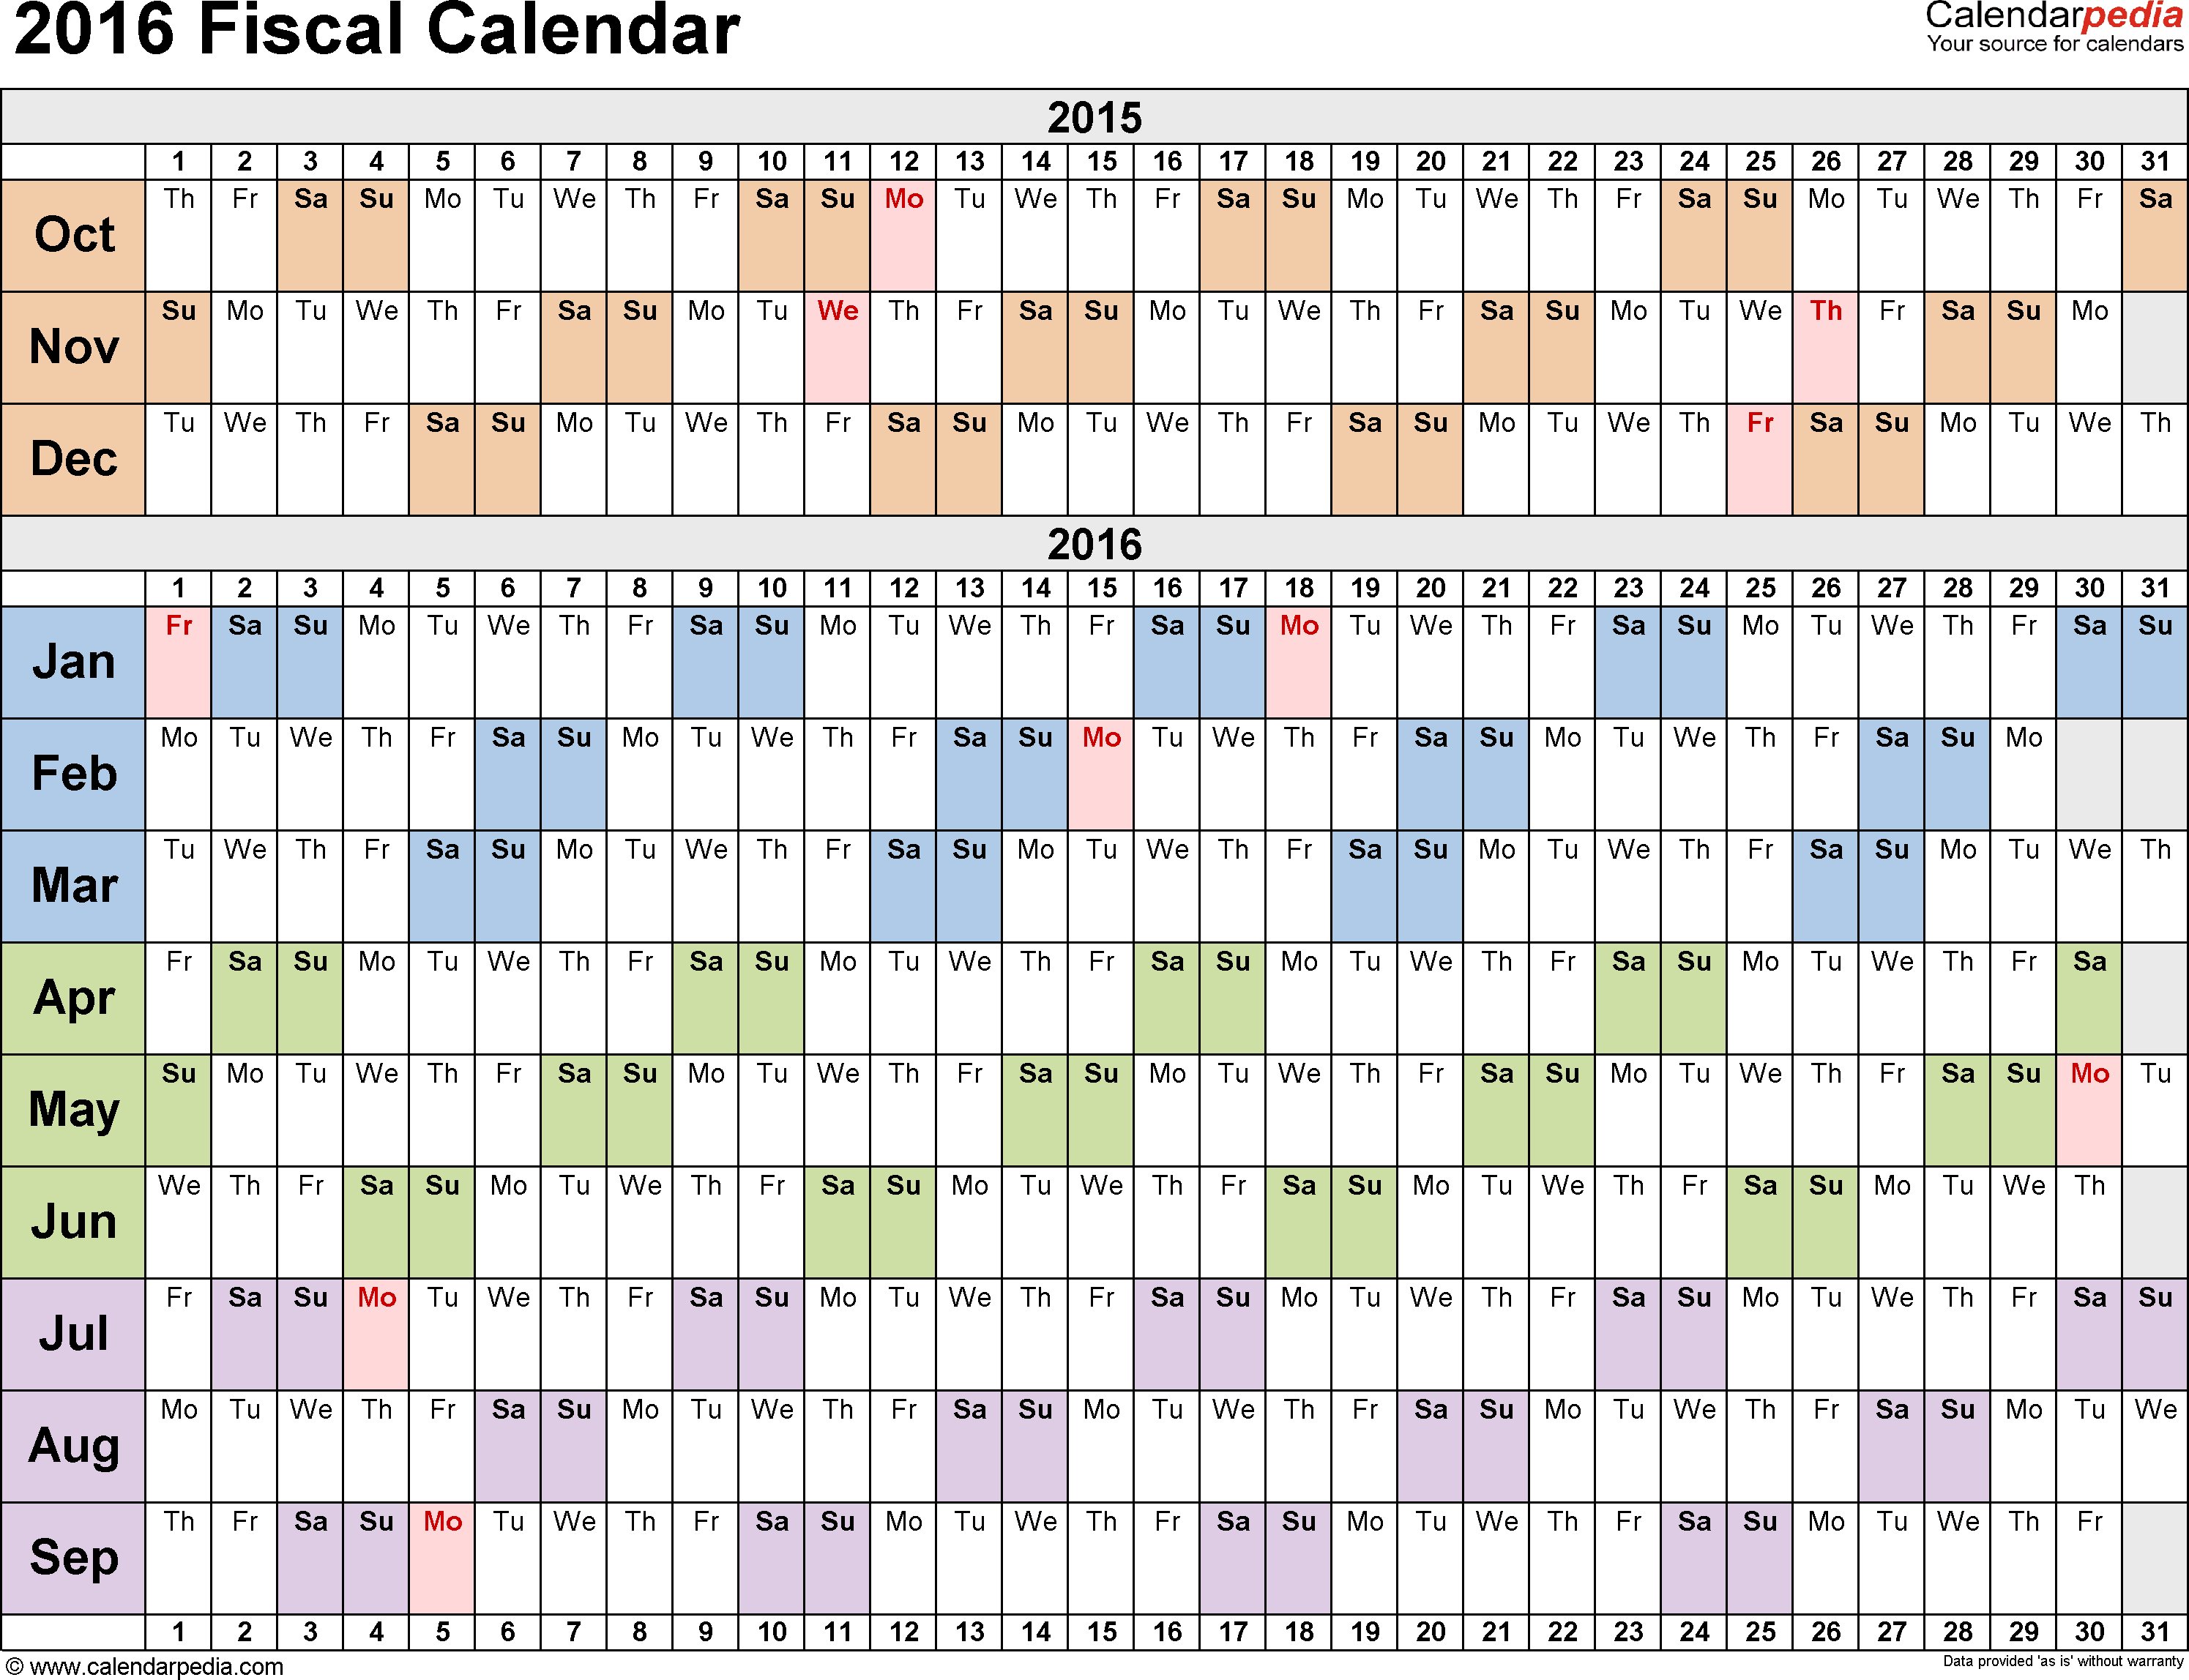 Template 2: Fiscal year calendar 2016 for Word, landscape orientation, days horizontally (linear), 1 page